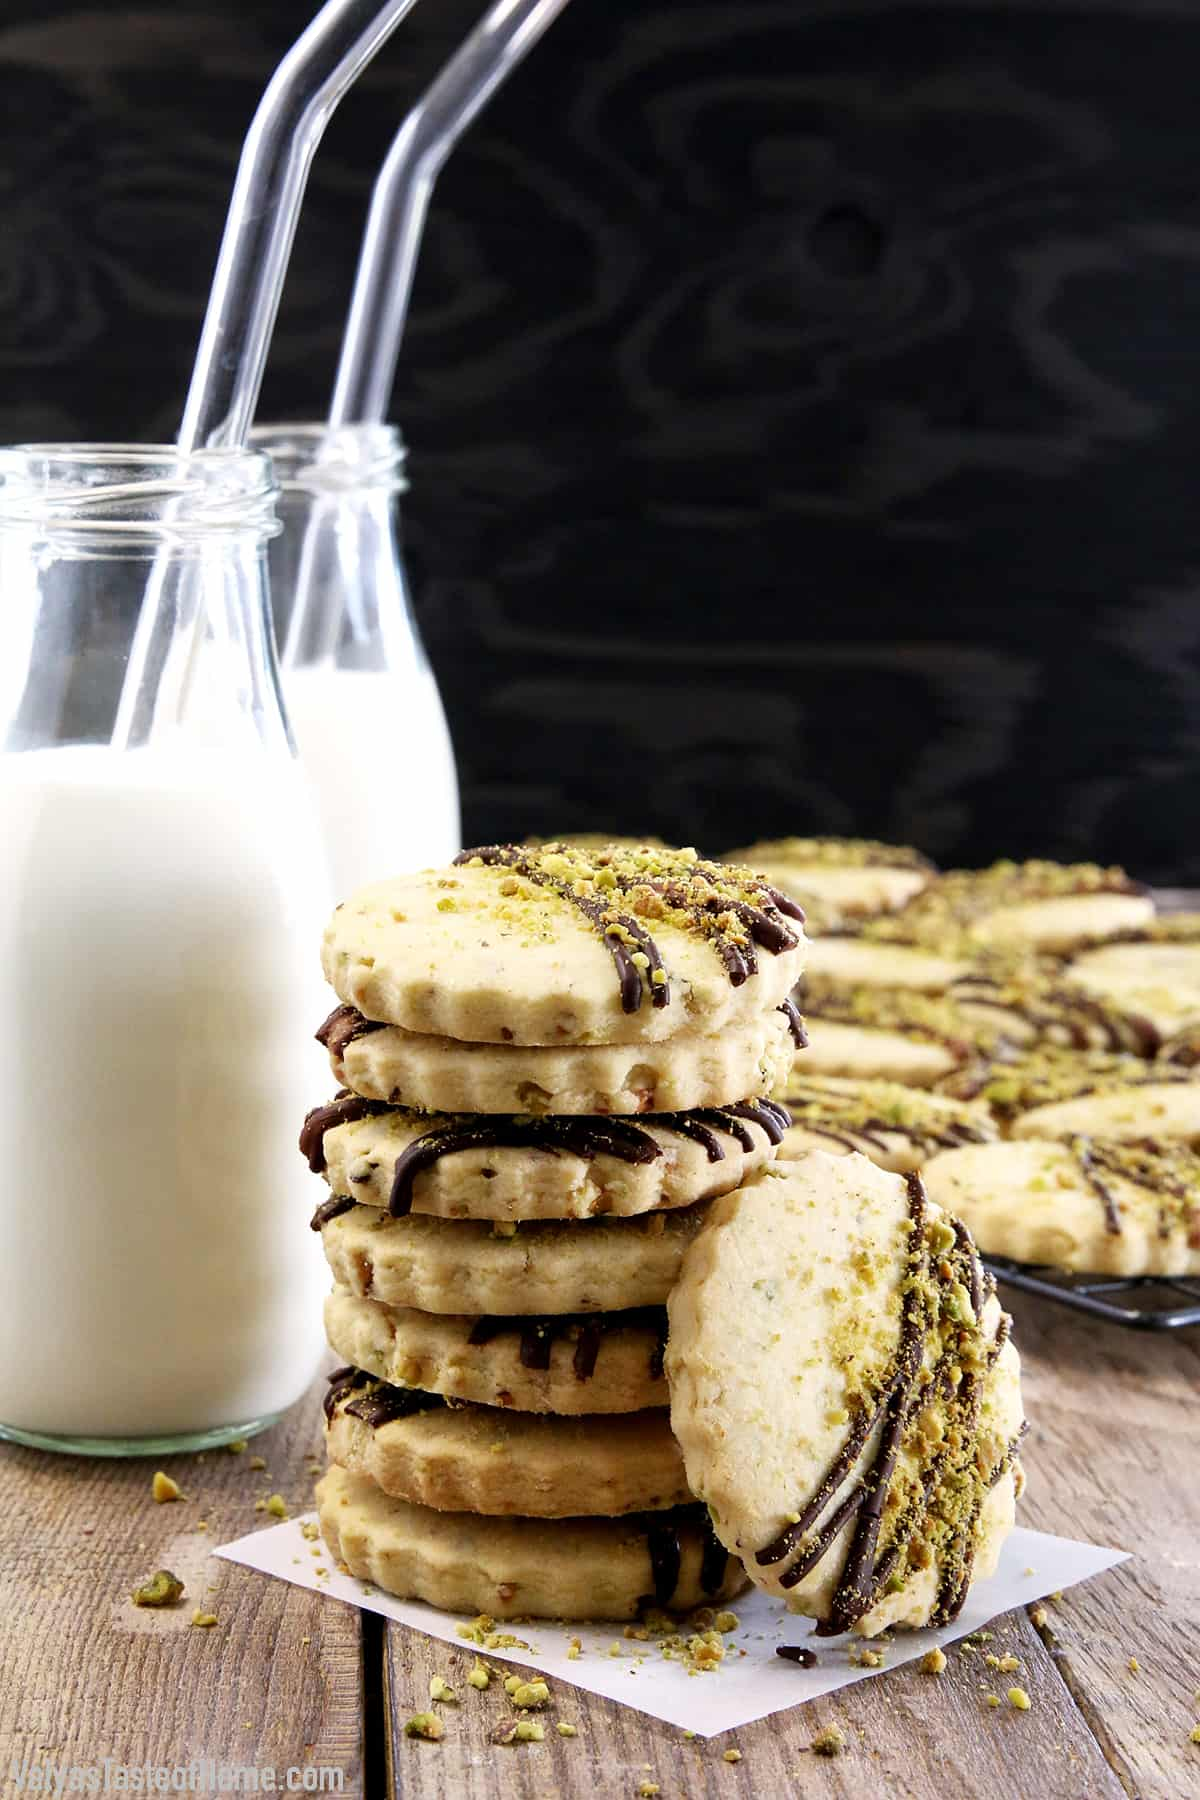 Move over chocolate chip cookies, these delicious cookies may just become a new favorite. What goes great with a treat like these Easy Pistachio Dark Chocolate Drizzle Shortbread Cookies? You're right, cold milk!